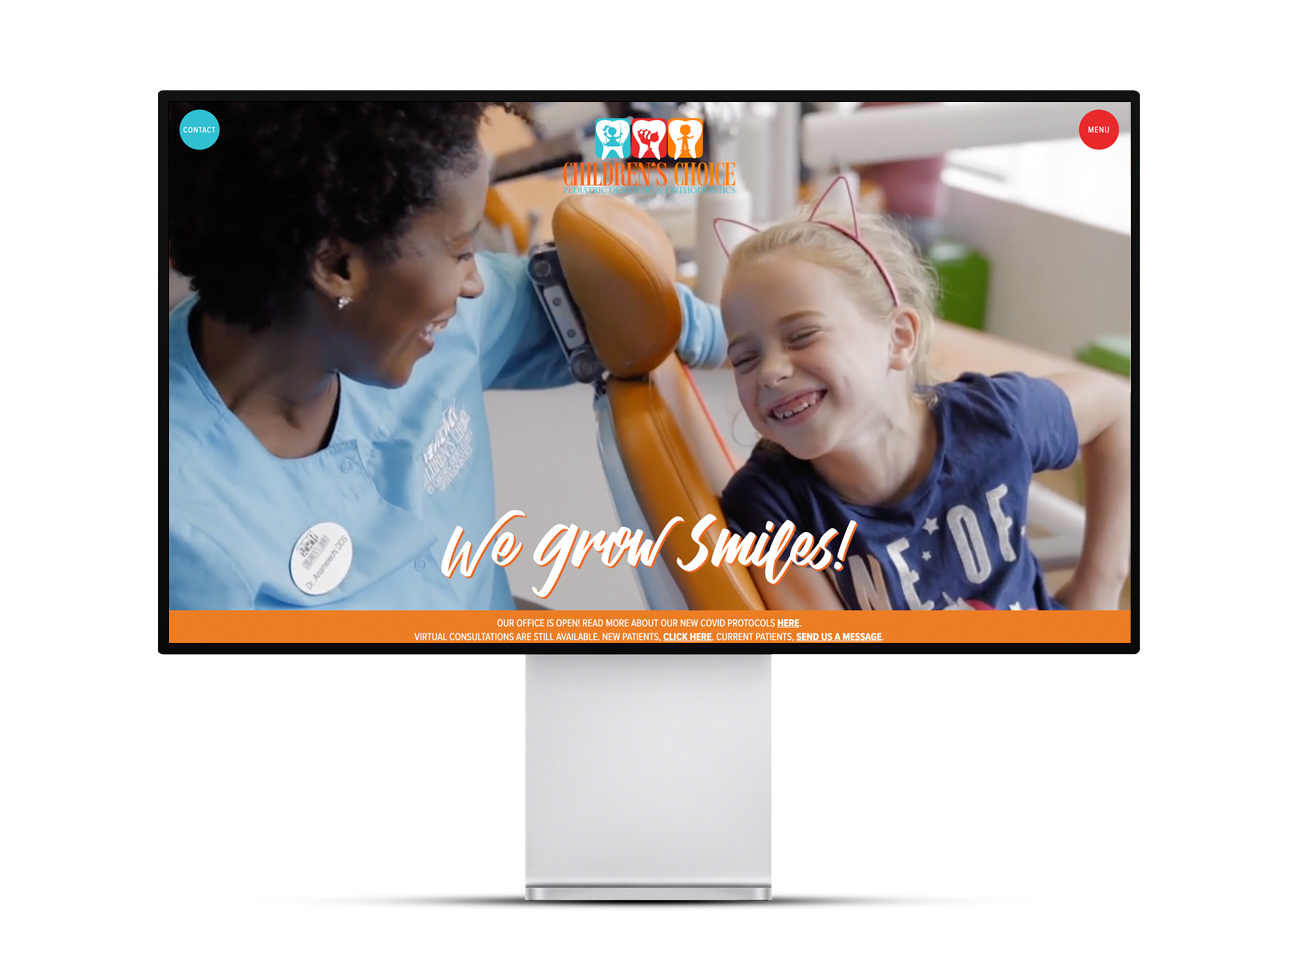 """Screenshot of the Children's Choice Pediatric Dentistry website showing a smiling dentist and young patient and the text """"We grow smiles!"""""""